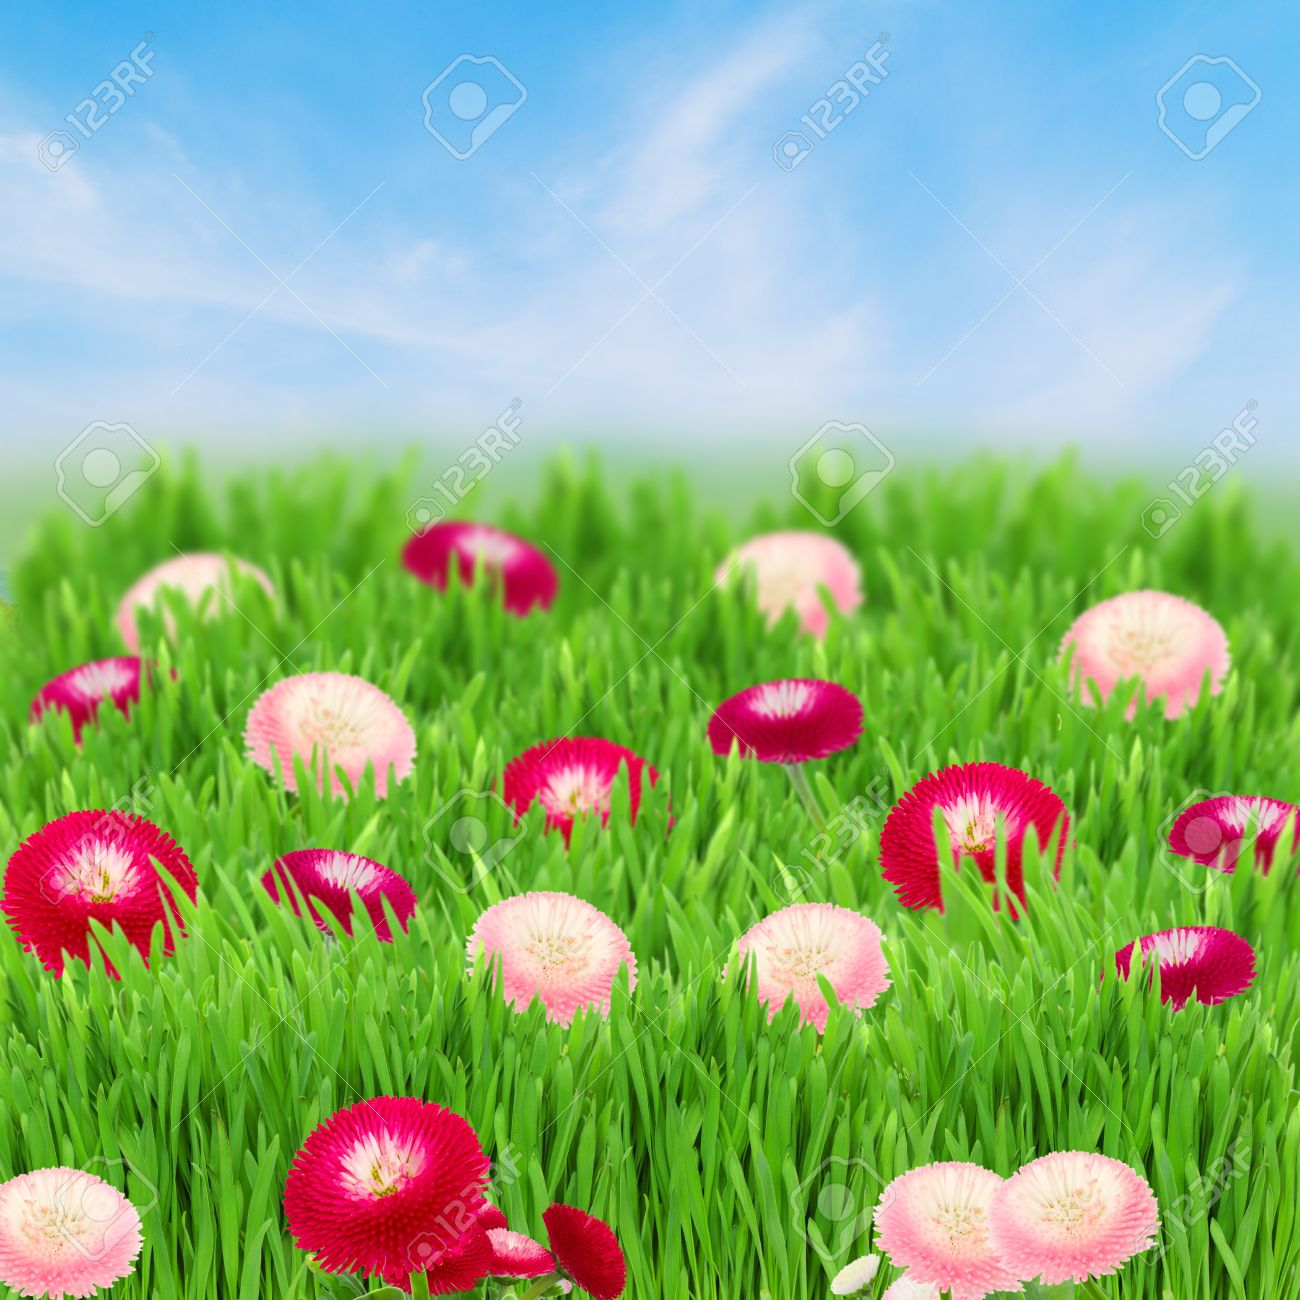 green grass blue sky flowers flower background png green grass lawn with daisy flowers on blue sky stock photo 19450841 green grass lawn with daisy flowers on blue sky photo picture